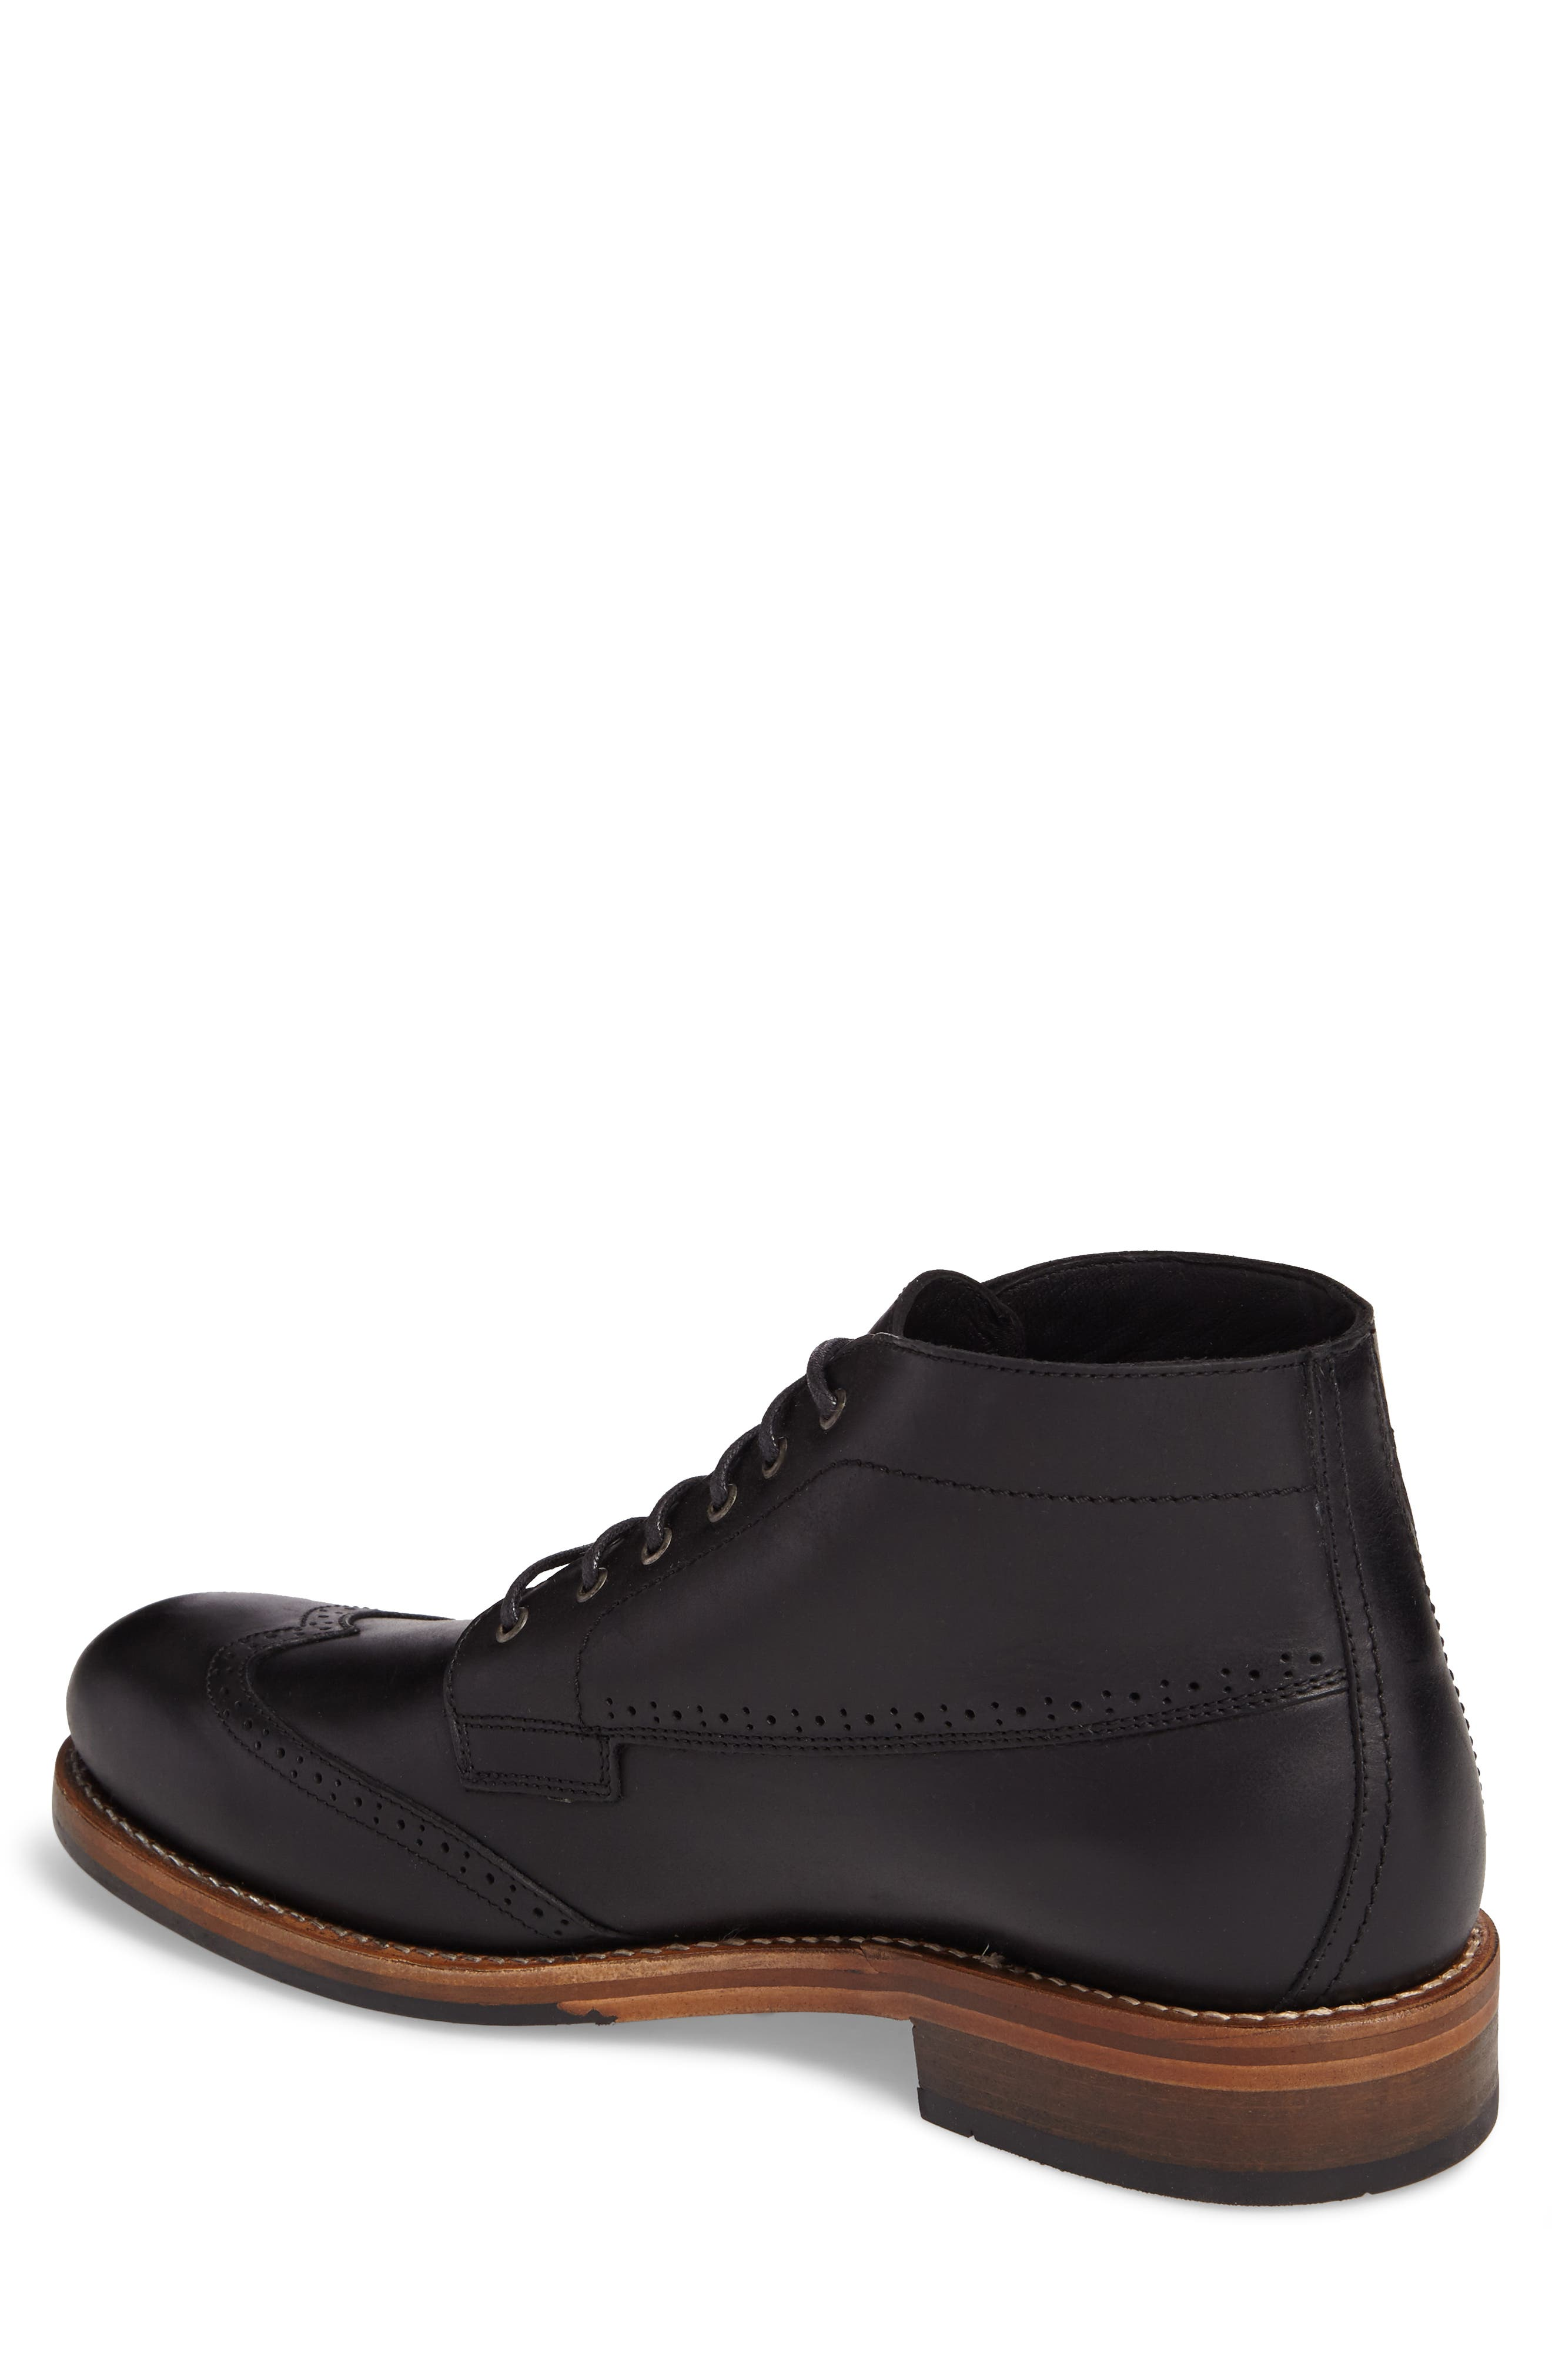 Harwell Wingtip Boot,                             Alternate thumbnail 2, color,                             BLACK